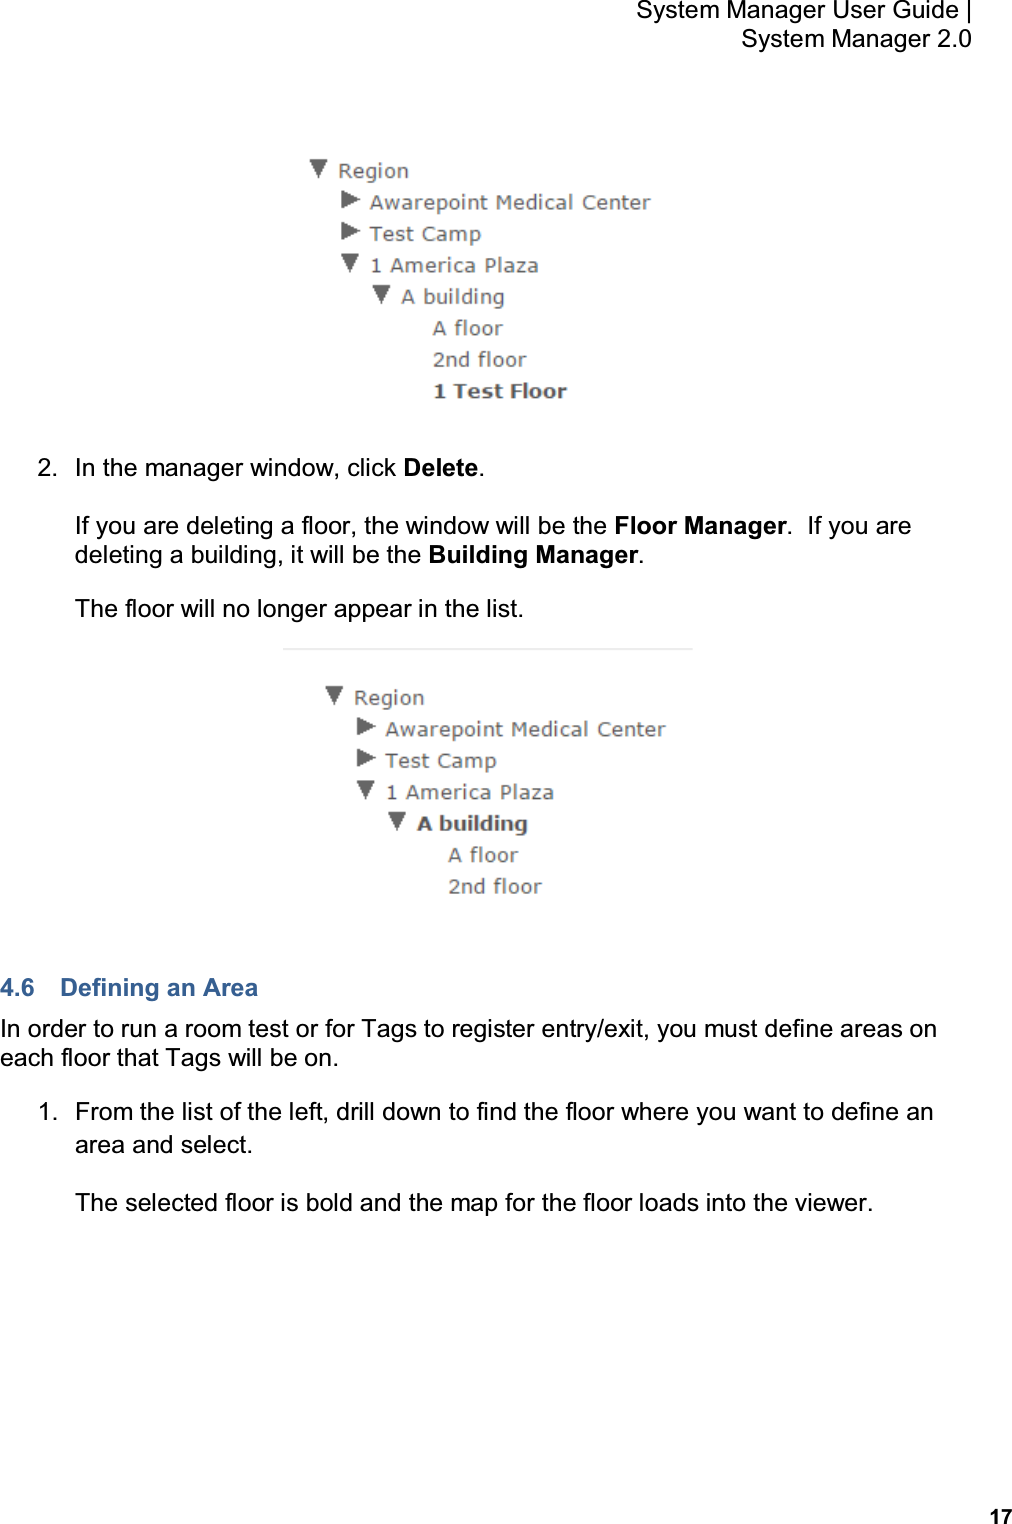 17 System Manager User Guide    System Manager 2.0  2.  In the manager window, click Delete. If you are deleting a floor, the window will be the Floor Manager.  If you are deleting a building, it will be the Building Manager. The floor will no longer appear in the list.  4.6  Defining an Area In order to run a room test or for Tags to register entry/exit, you must define areas on each floor that Tags will be on. 1.  From the list of the left, drill down to find the floor where you want to define an area and select. The selected floor is bold and the map for the floor loads into the viewer.